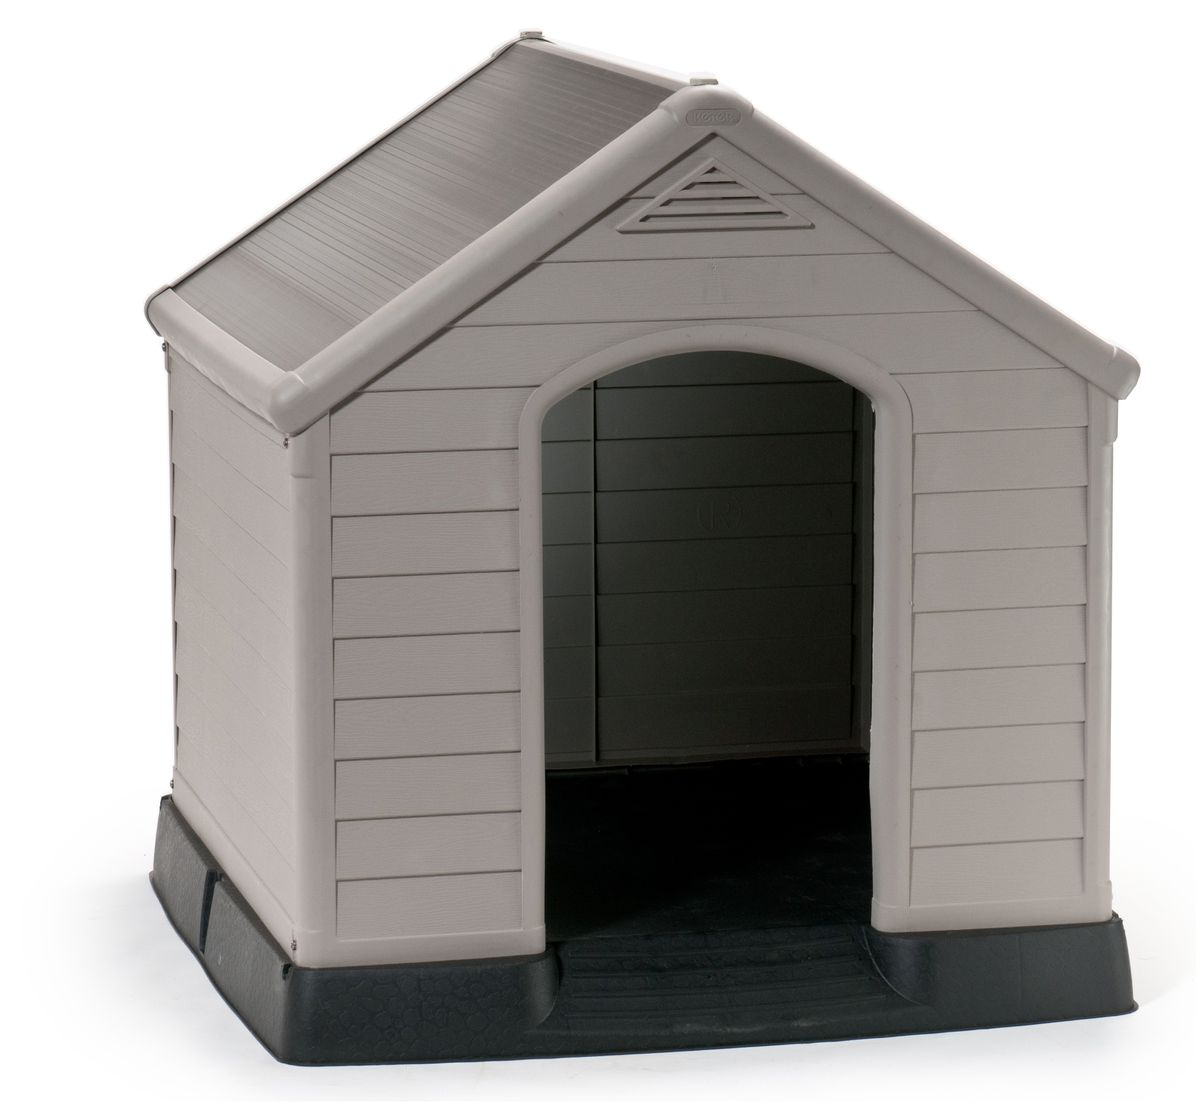 Keter dog kennel buy online in south africa for Casetas jardin resina ikea